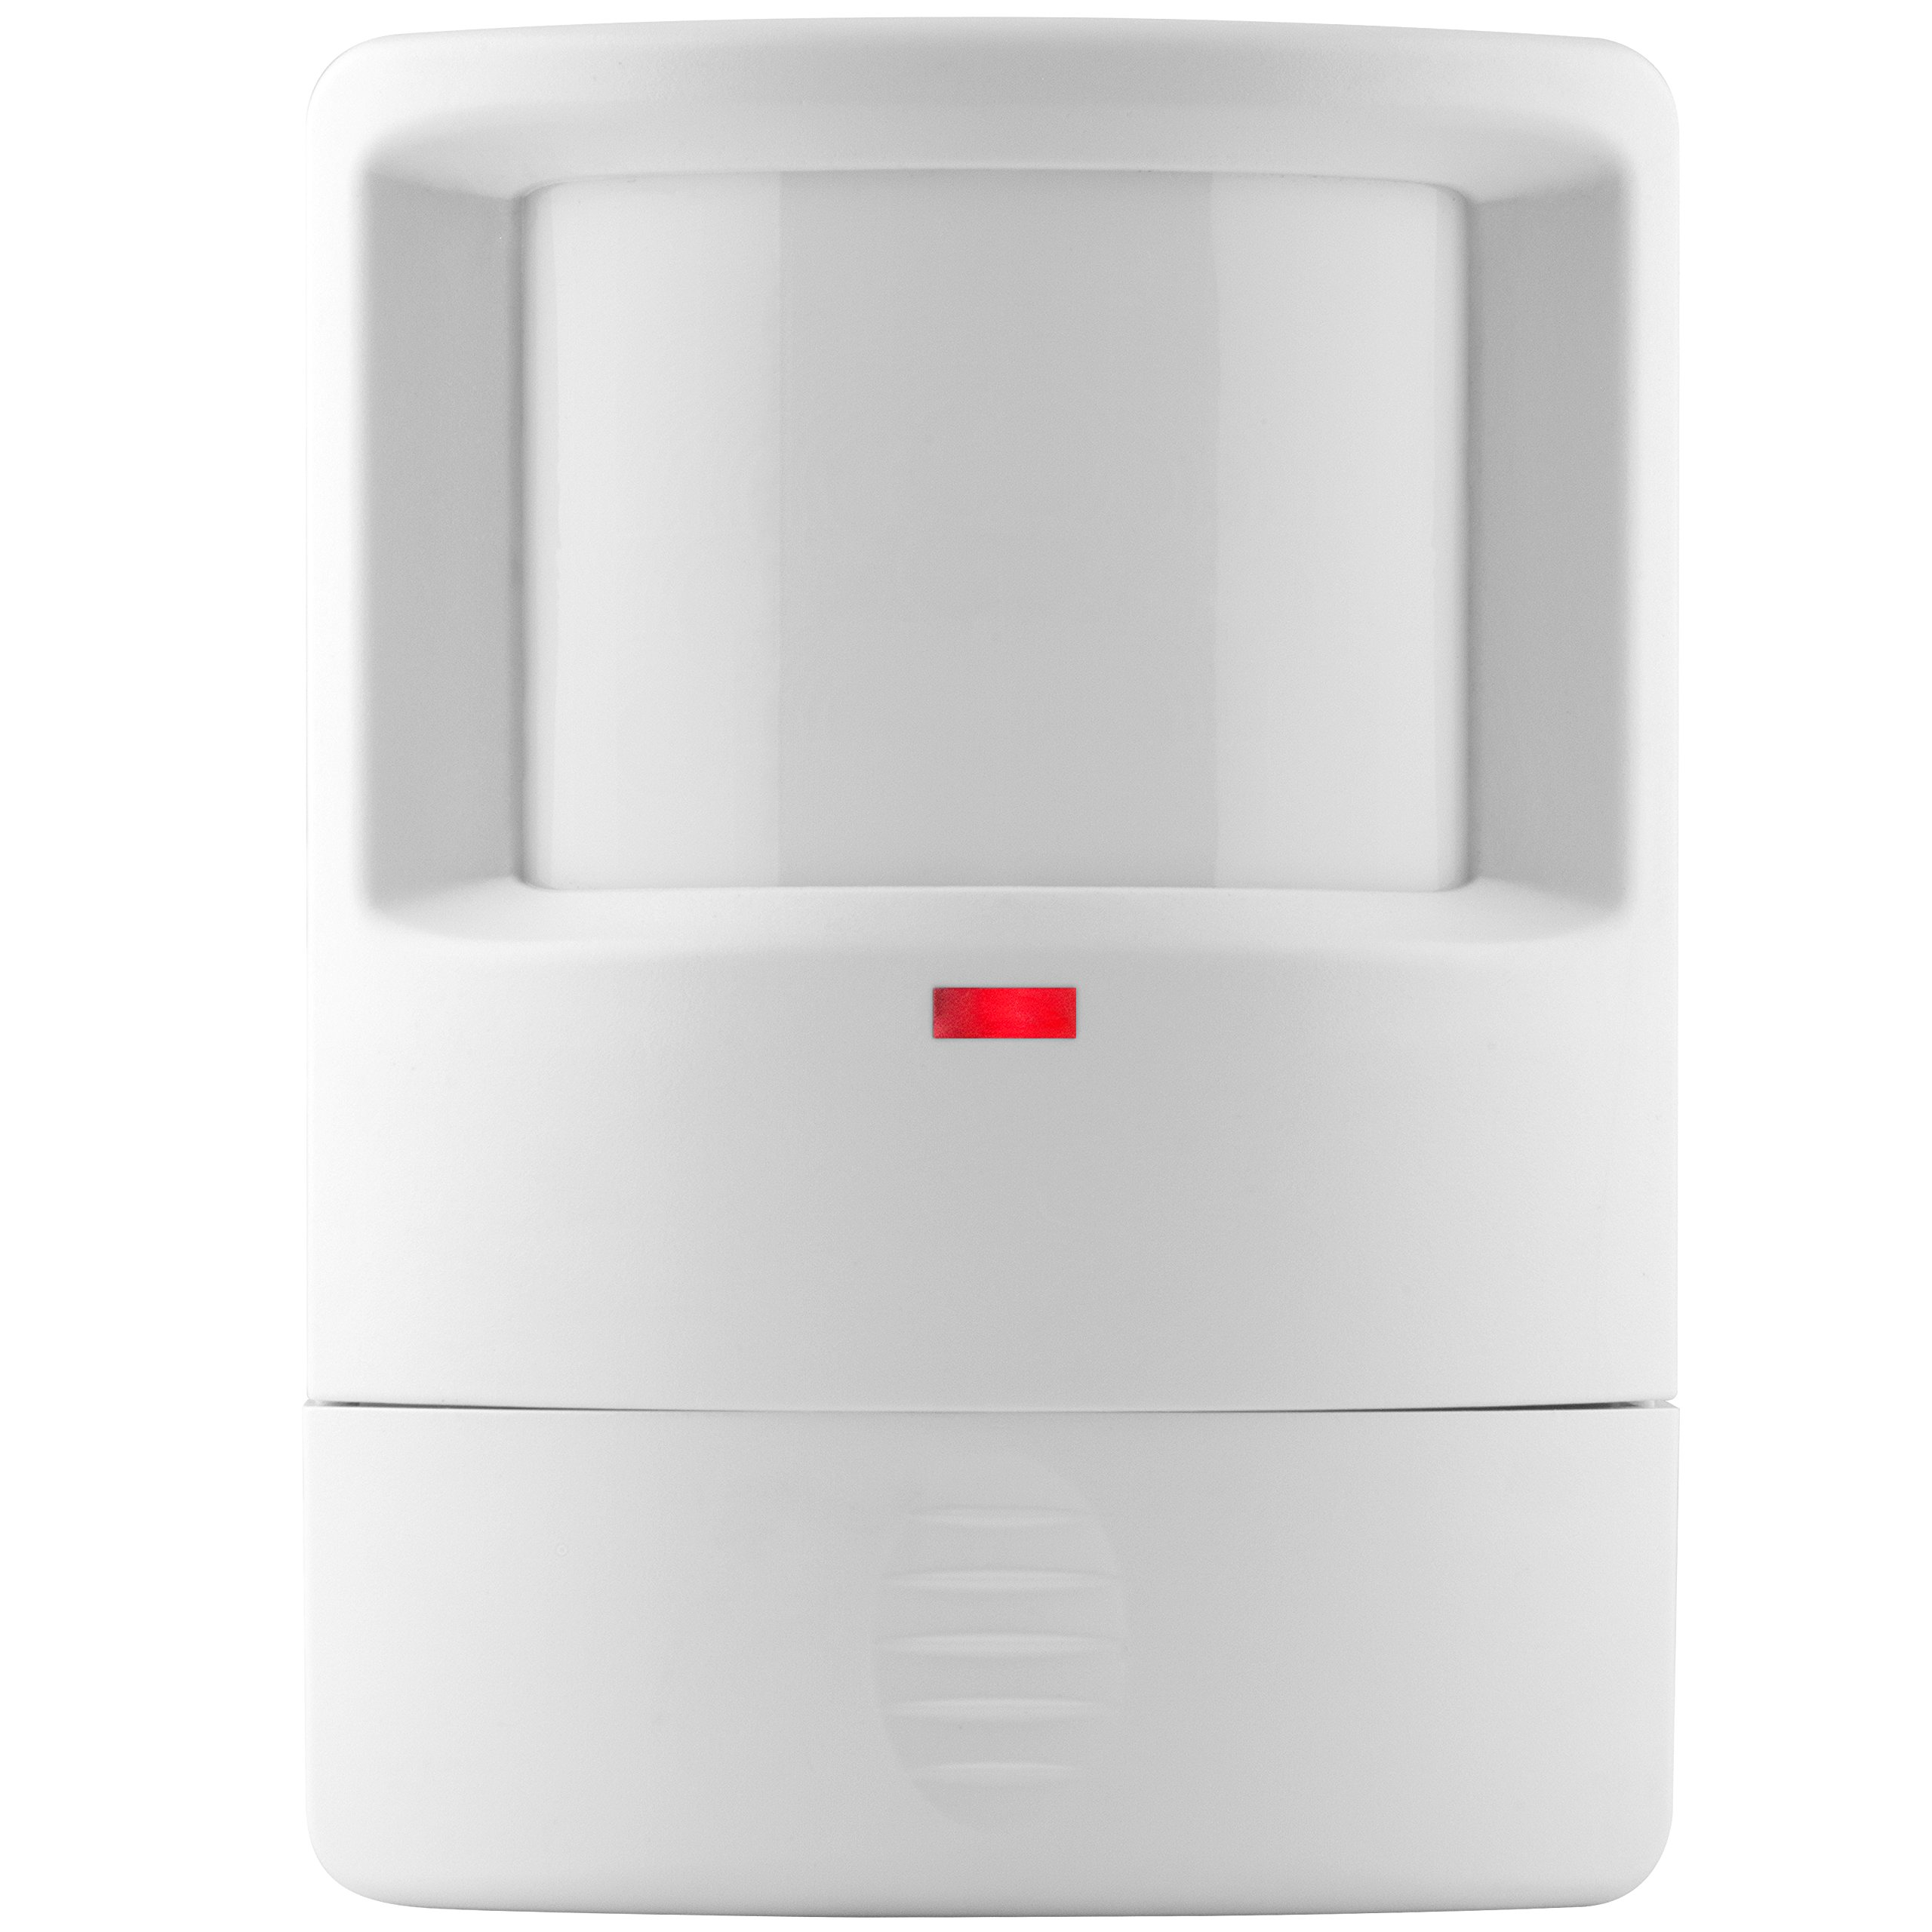 Enerlites MPW-V Wall Mount PIR Occupancy Sensor, Passive Infrared Line Voltage Switch, 1000 ft. sq Coverage - White